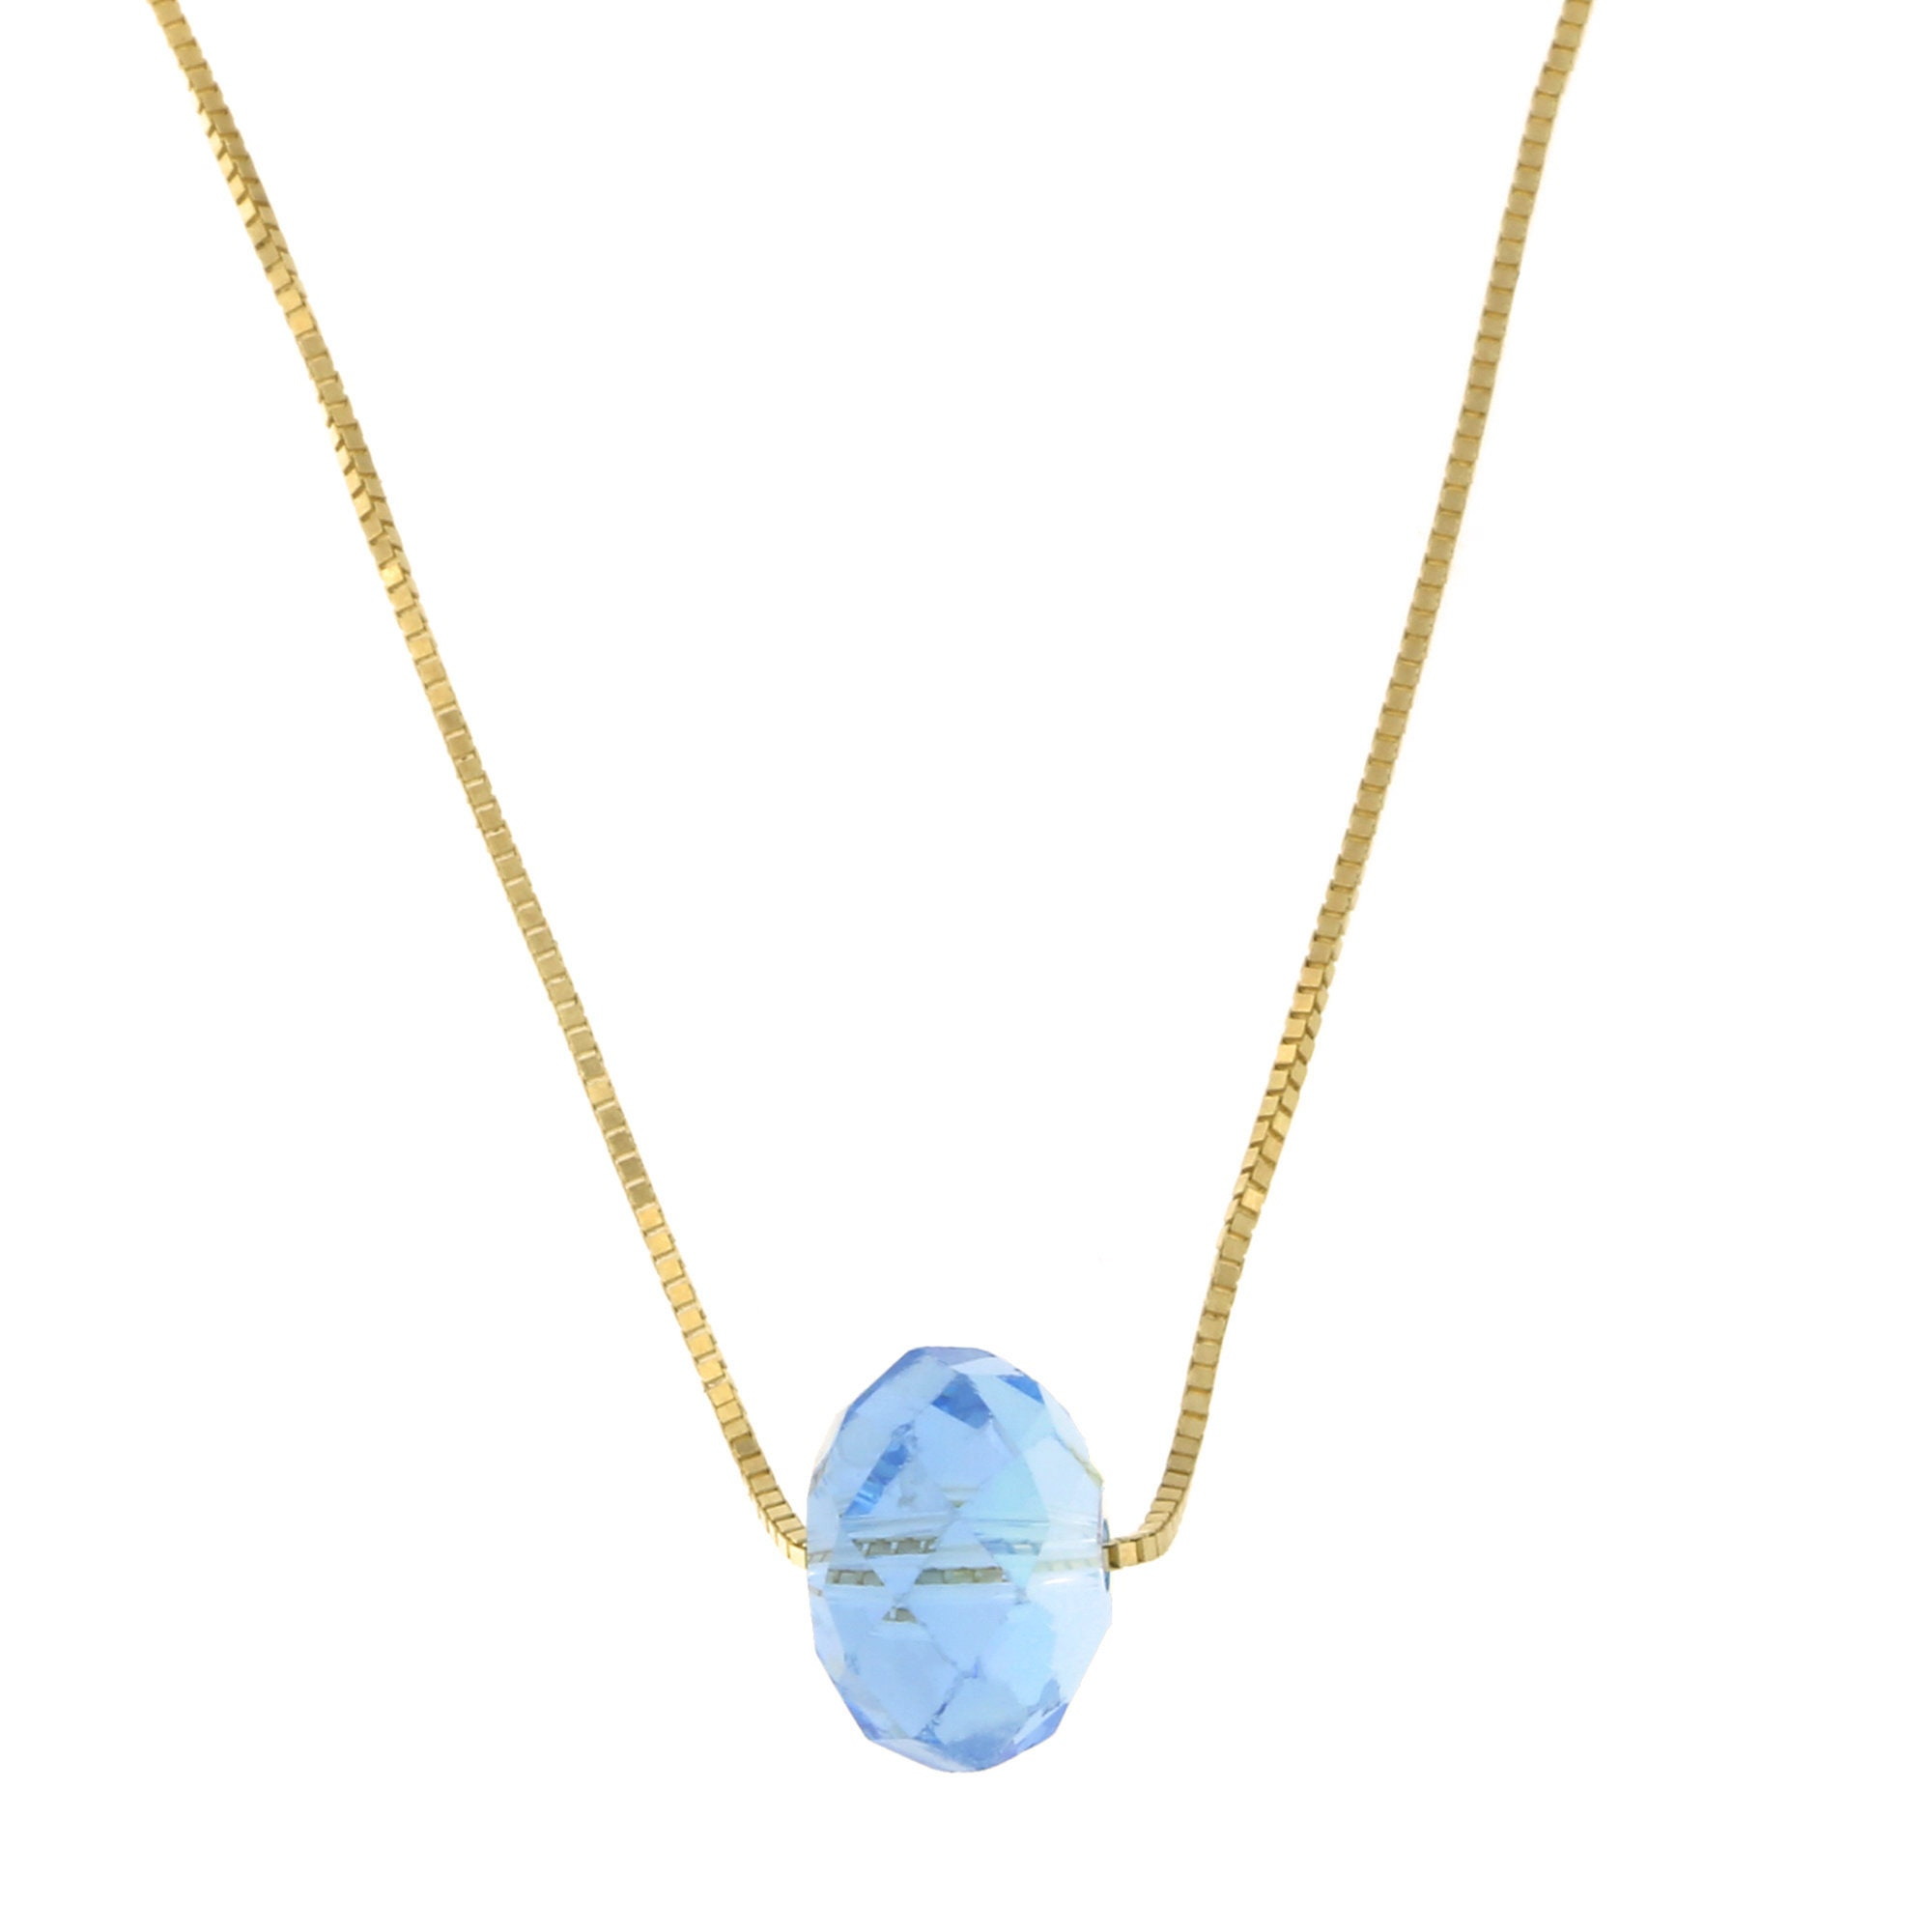 14k Yellow White or Rose Gold Rope Chain Iridescent Blue Crystal Necklace